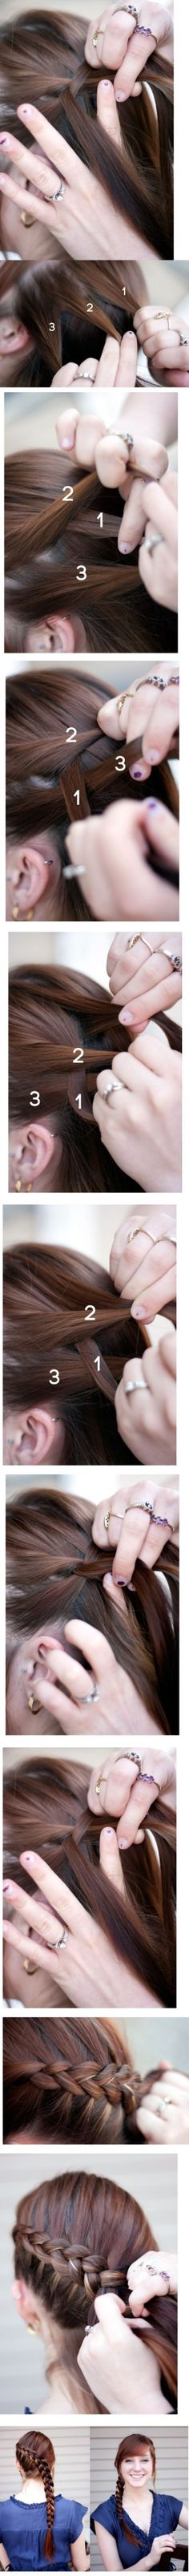 Step-by-Step: Hunger Games - Katniss Everdeen Hair Braid Katniss Everdeen hairstyle from the Hunger Pretty Hairstyles, Girl Hairstyles, Braided Hairstyles, Country Hairstyles, Classic Hairstyles, Layered Hairstyles, 2015 Hairstyles, Creative Hairstyles, Elegant Hairstyles